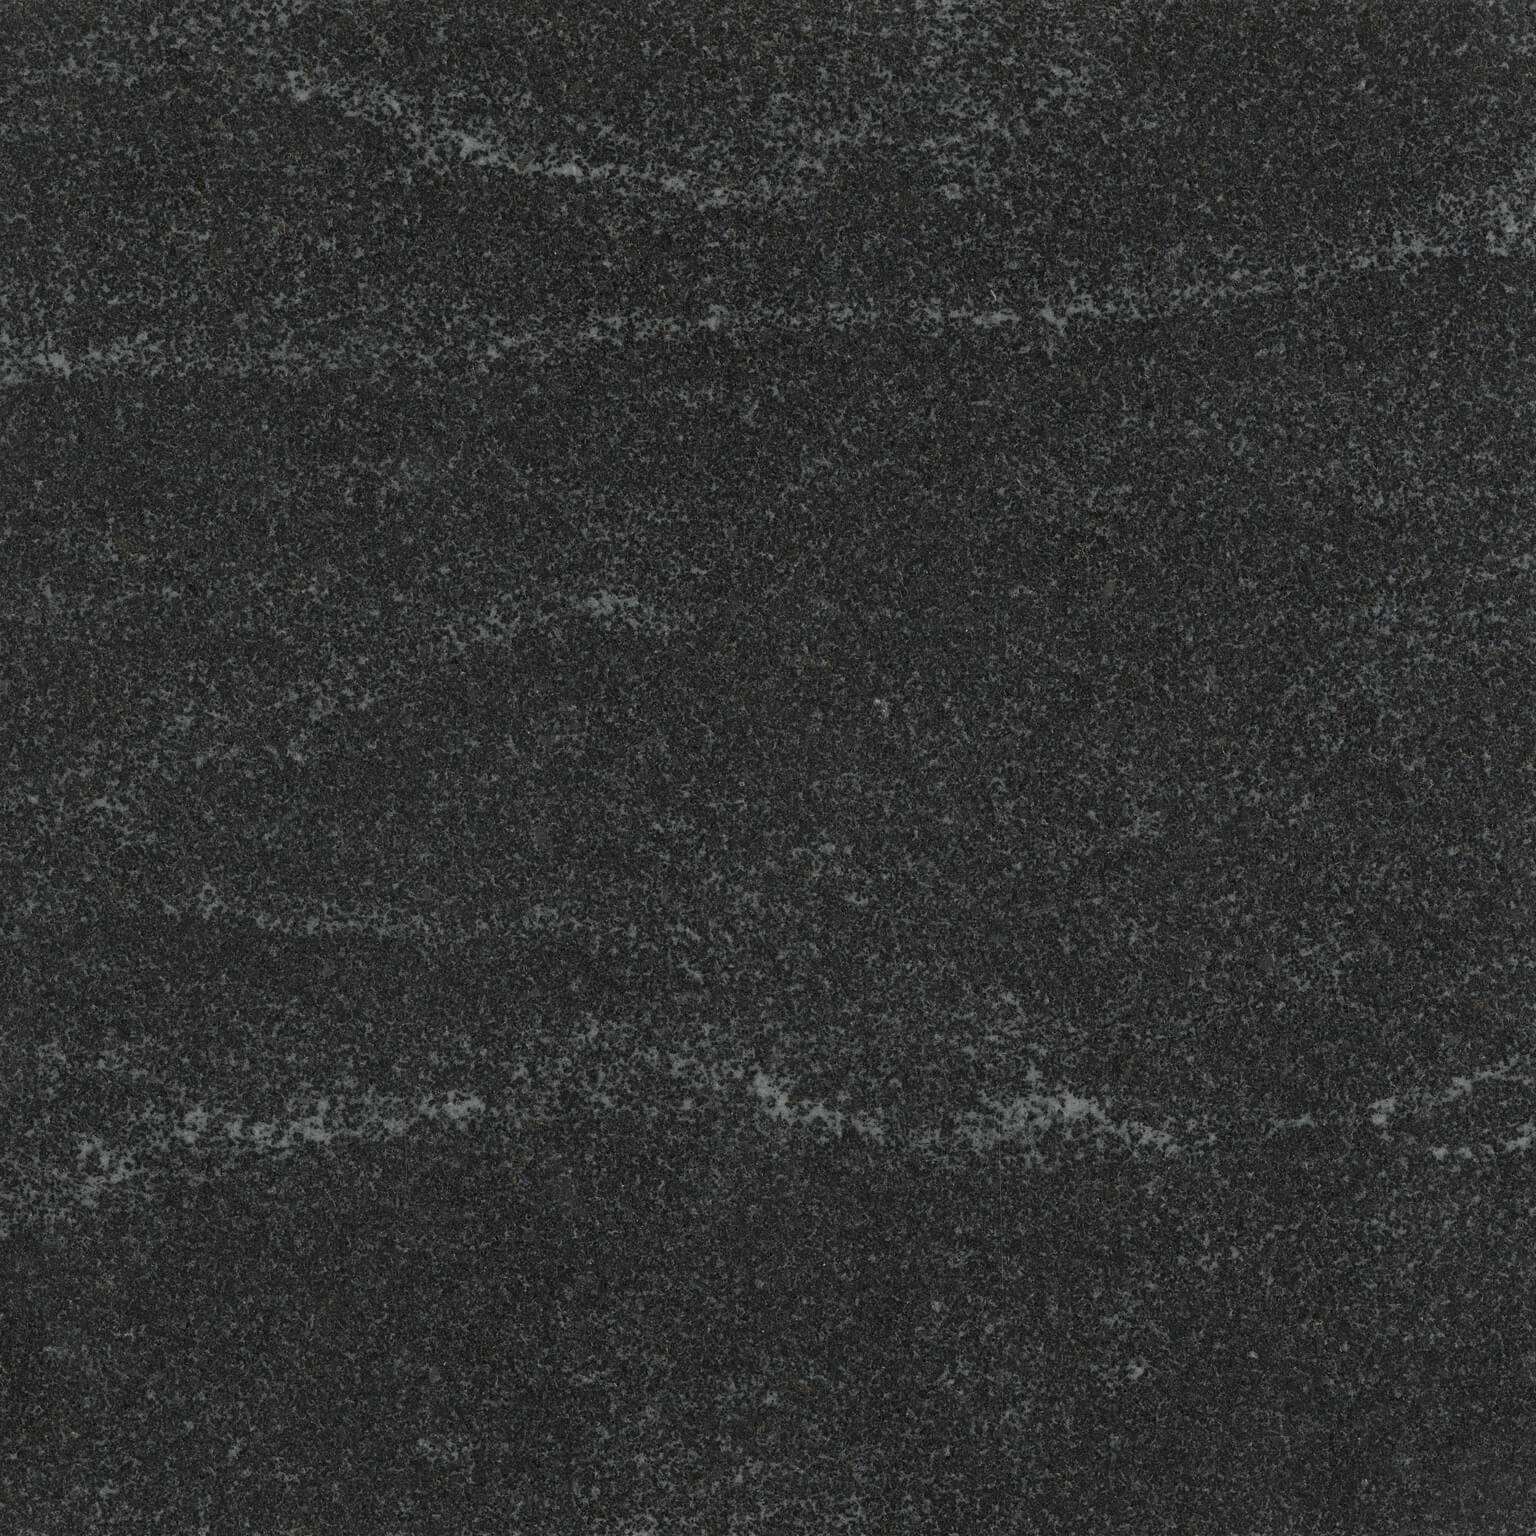 Polished Black Granite Texture Intended American Black Polished Polycor Natural Stone North America Granite